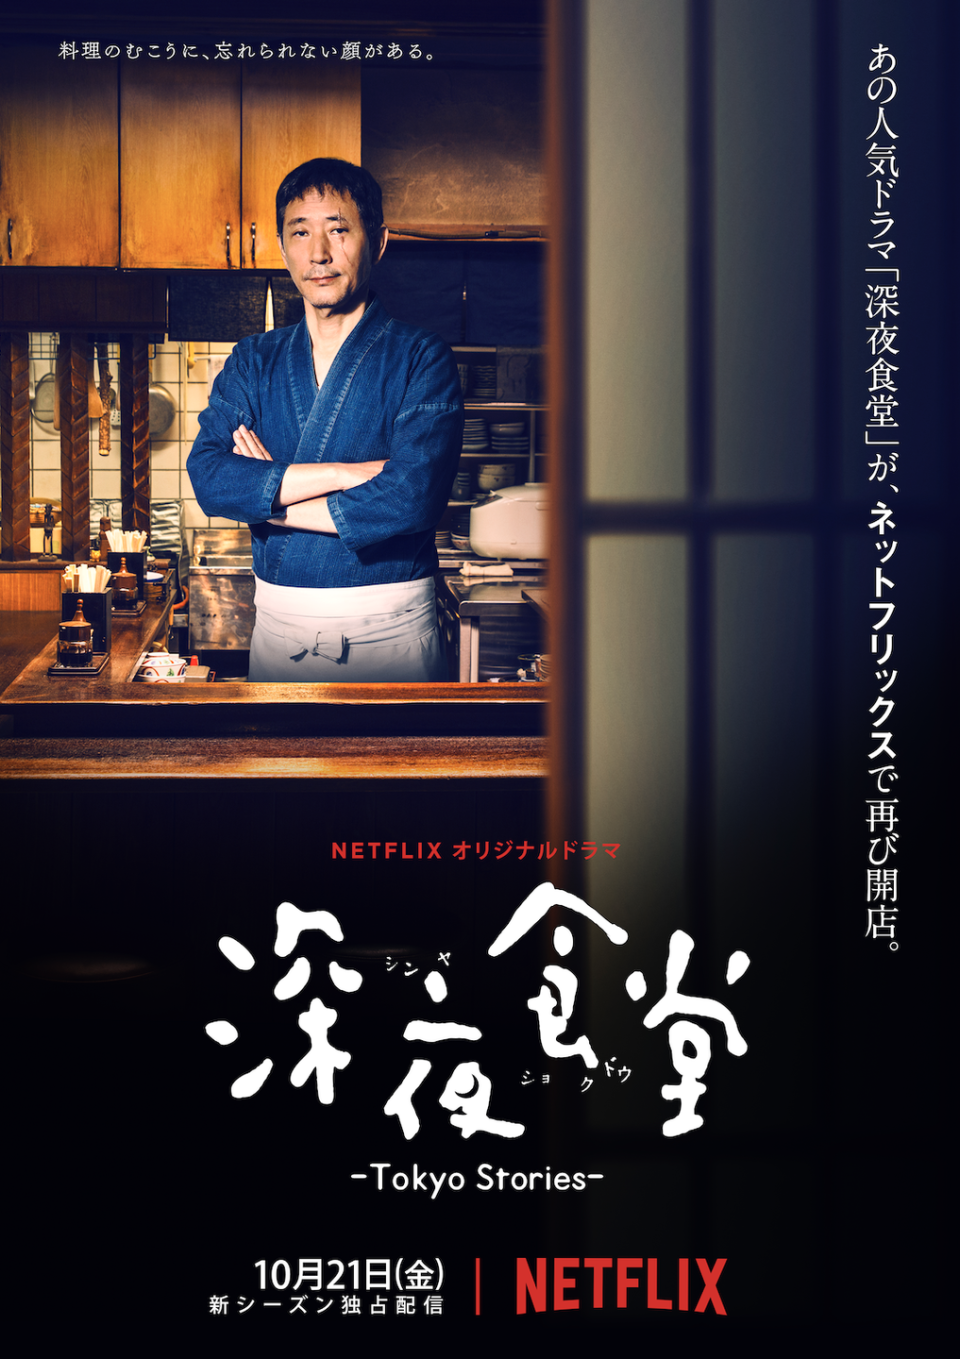 """<p>Based on the <a href=""""https://www.reddit.com/r/MidnightDiner/comments/hq7oeq/midnight_diner_manga_where_it_all_began/"""" rel=""""nofollow noopener"""" target=""""_blank"""" data-ylk=""""slk:manga of the same name"""" class=""""link rapid-noclick-resp"""">manga of the same name</a>, this Japanese Netflix series is centered around a diner in Shinjuku, Tokyo called Meshiya. It's known by locals as the Midnight Diner because it's open from midnight to 7 a.m. The establishment is run by a chef who goes by Master (<strong>Kaoru Kobayashi</strong>). As long as he has the ingredients on hand, he'll make customers whatever they desire. While they enjoy his food, he learns about their lives.<br></p><p><a class=""""link rapid-noclick-resp"""" href=""""https://www.netflix.com/title/80113037"""" rel=""""nofollow noopener"""" target=""""_blank"""" data-ylk=""""slk:STREAM NOW"""">STREAM NOW</a></p>"""